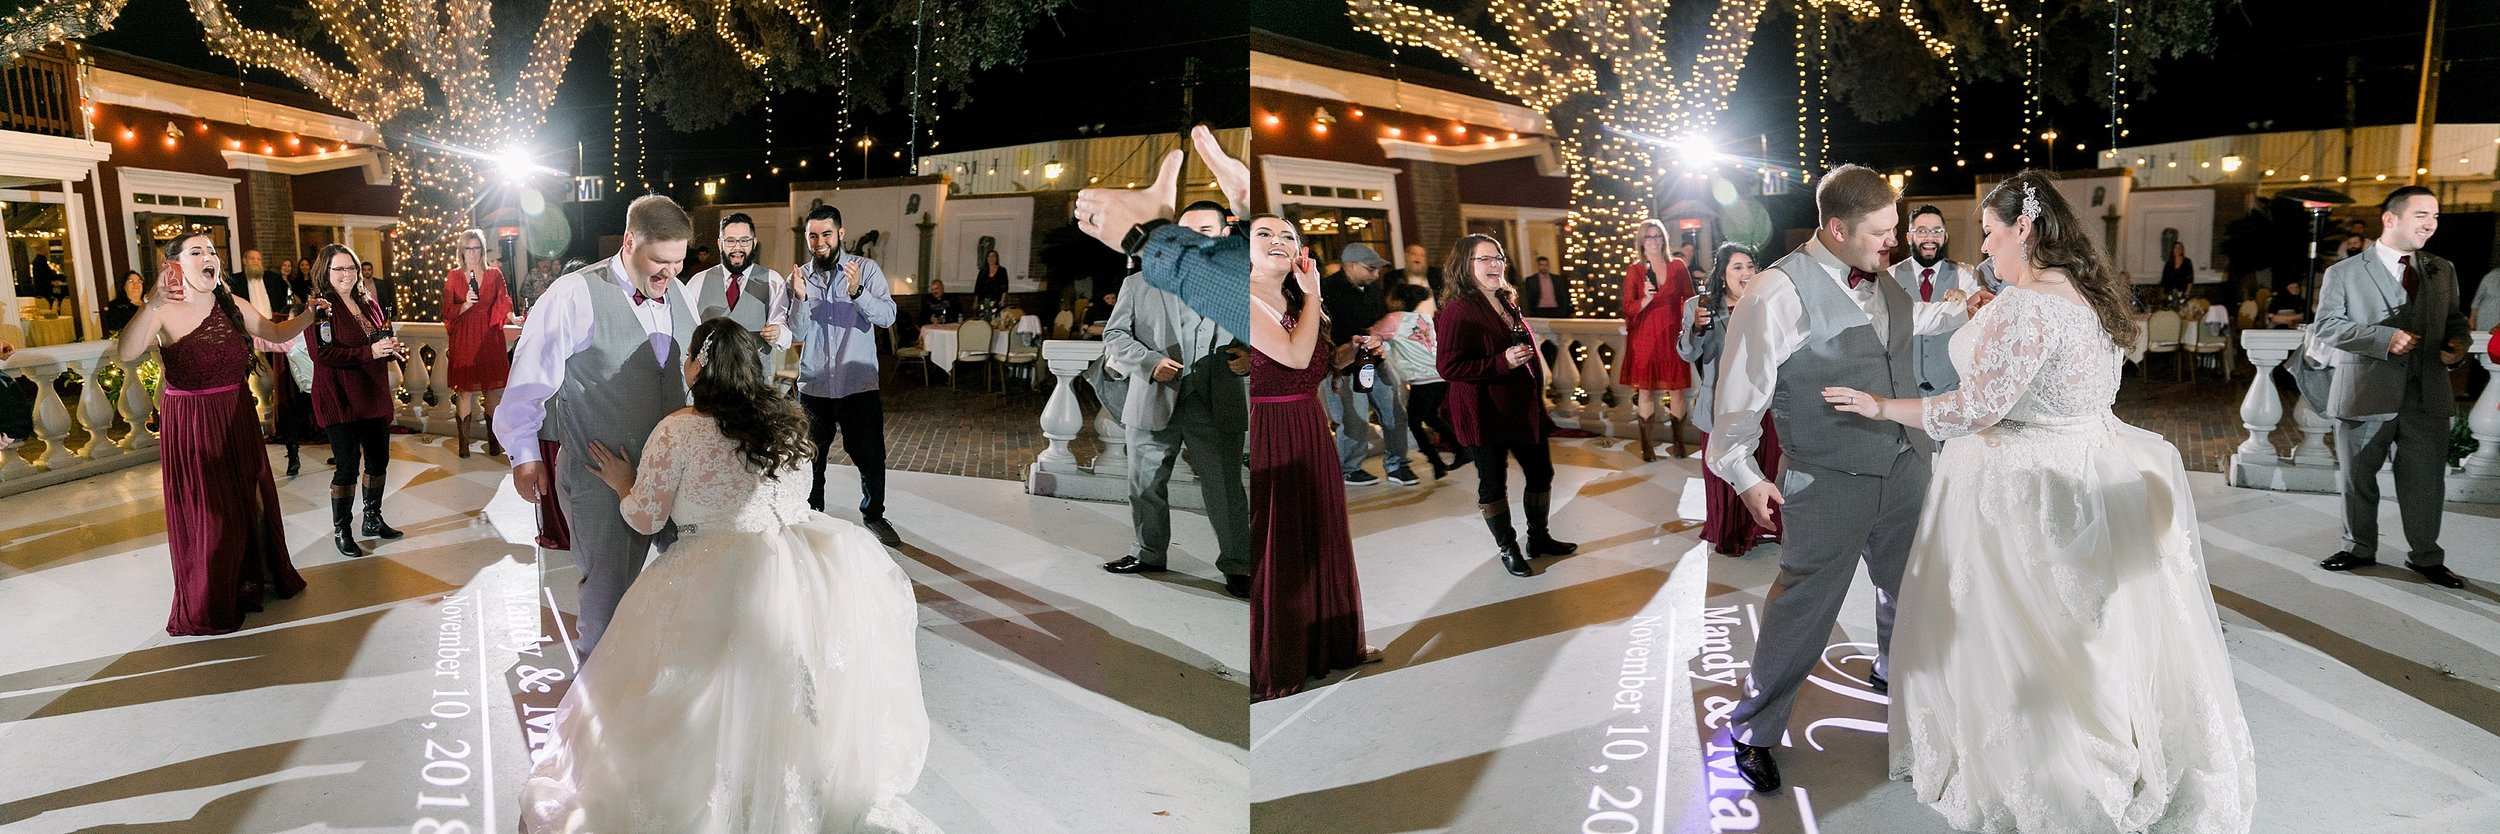 gaslight-at-courtyard-square-corpus-christi-wedding-omni-hotel-fall-winter-wedding-texas-wedding-photographer-lauren-pinson-0103.jpg